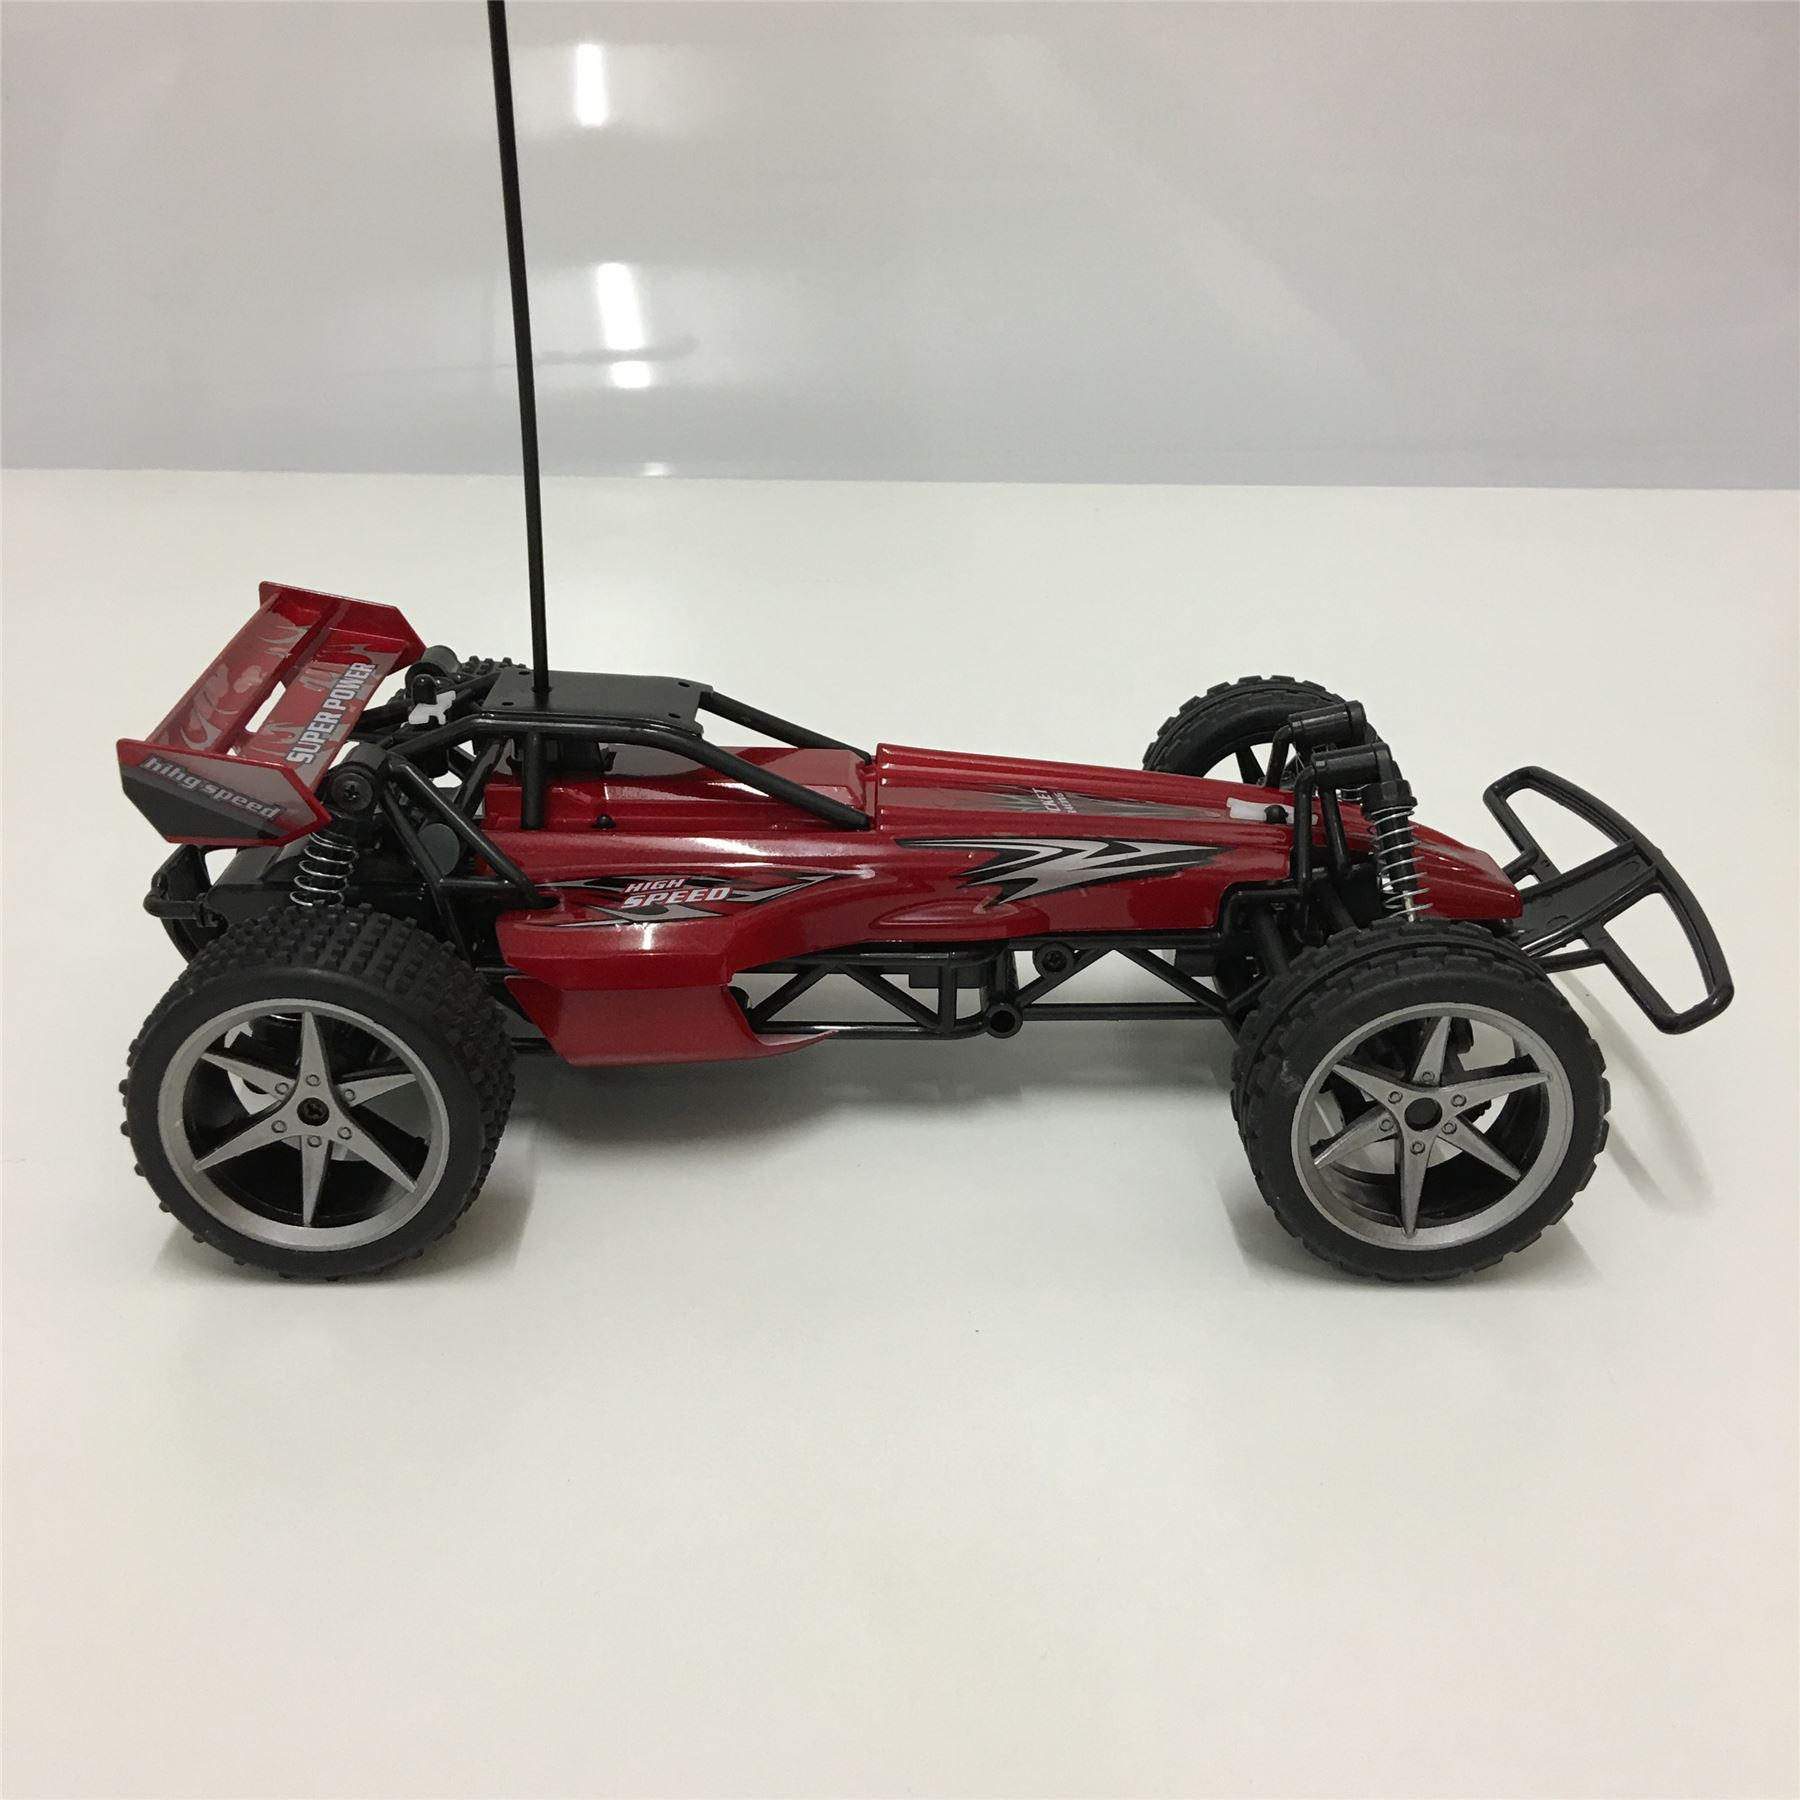 Remote control dune buggy - Ap recovery services